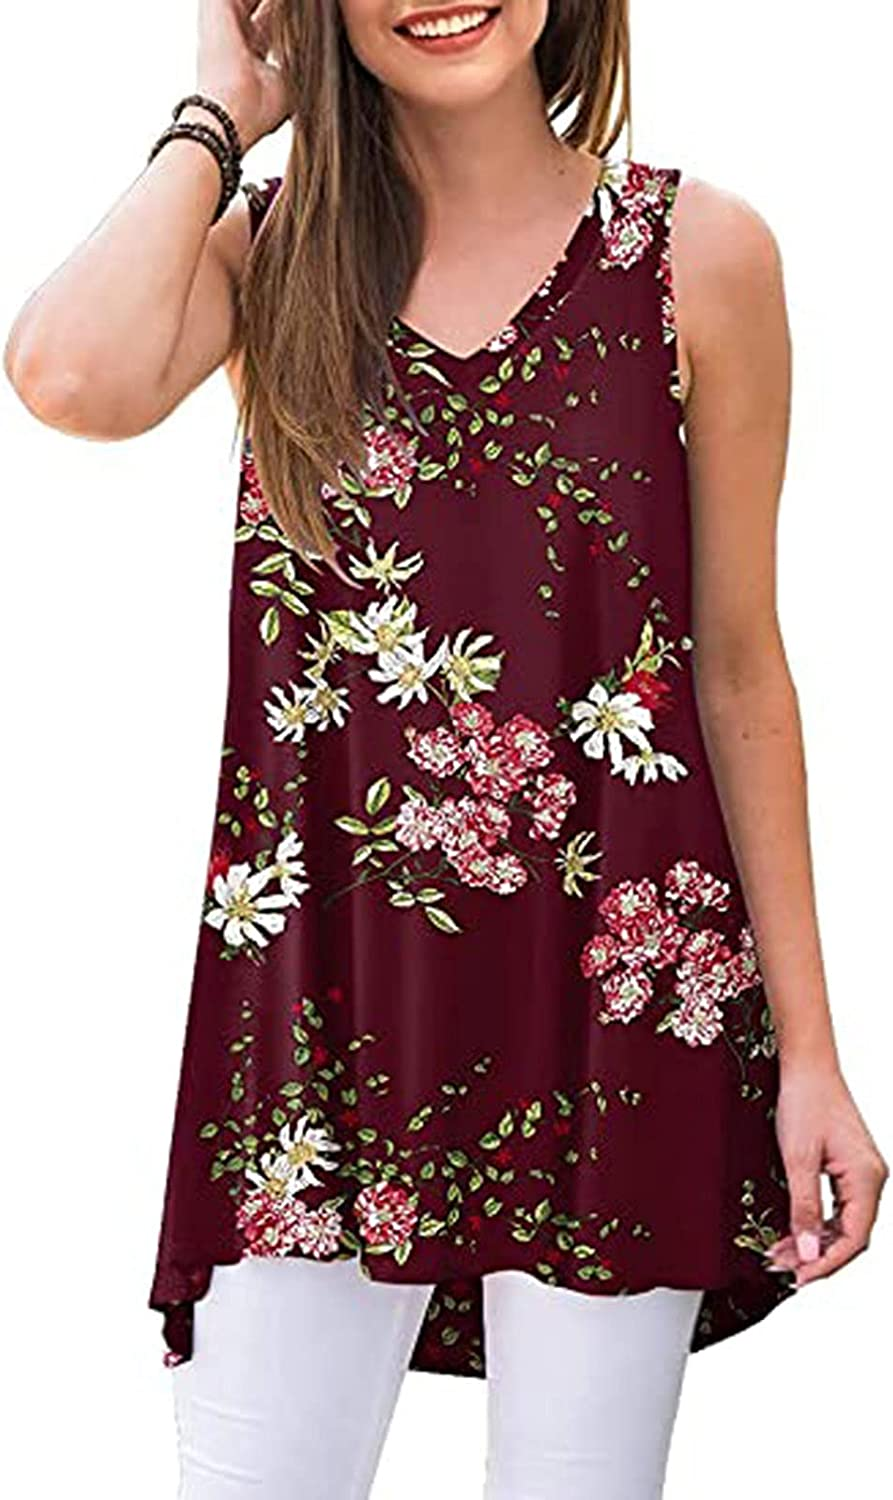 INESVER Women's Pleated Summer T-Shirt Blouses Floral Printed Sleeveless Tank Tops Casual Loose Camisole Vest